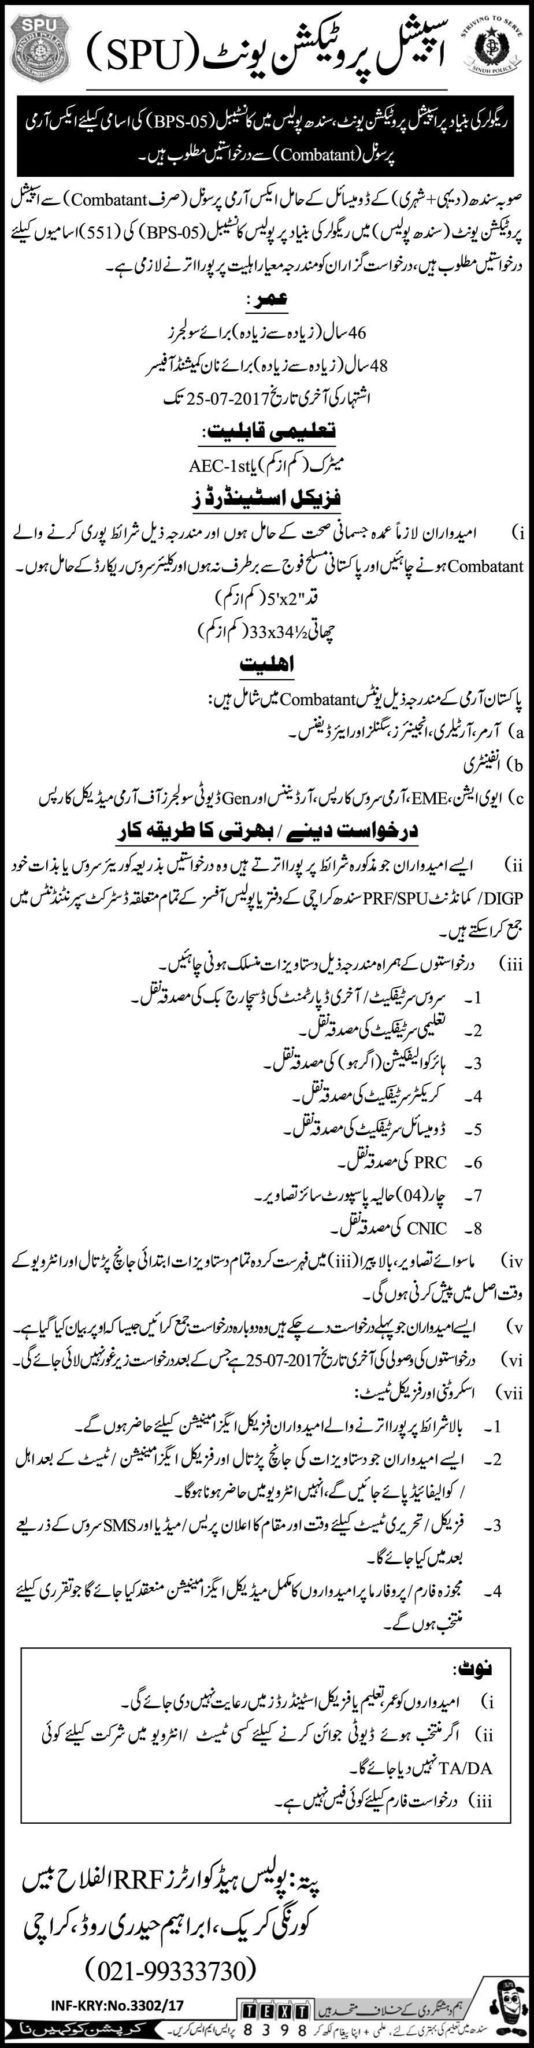 Sindh Police Jobs 2017 For Constables at Special Protection Unit SPU (551 Vacancies)